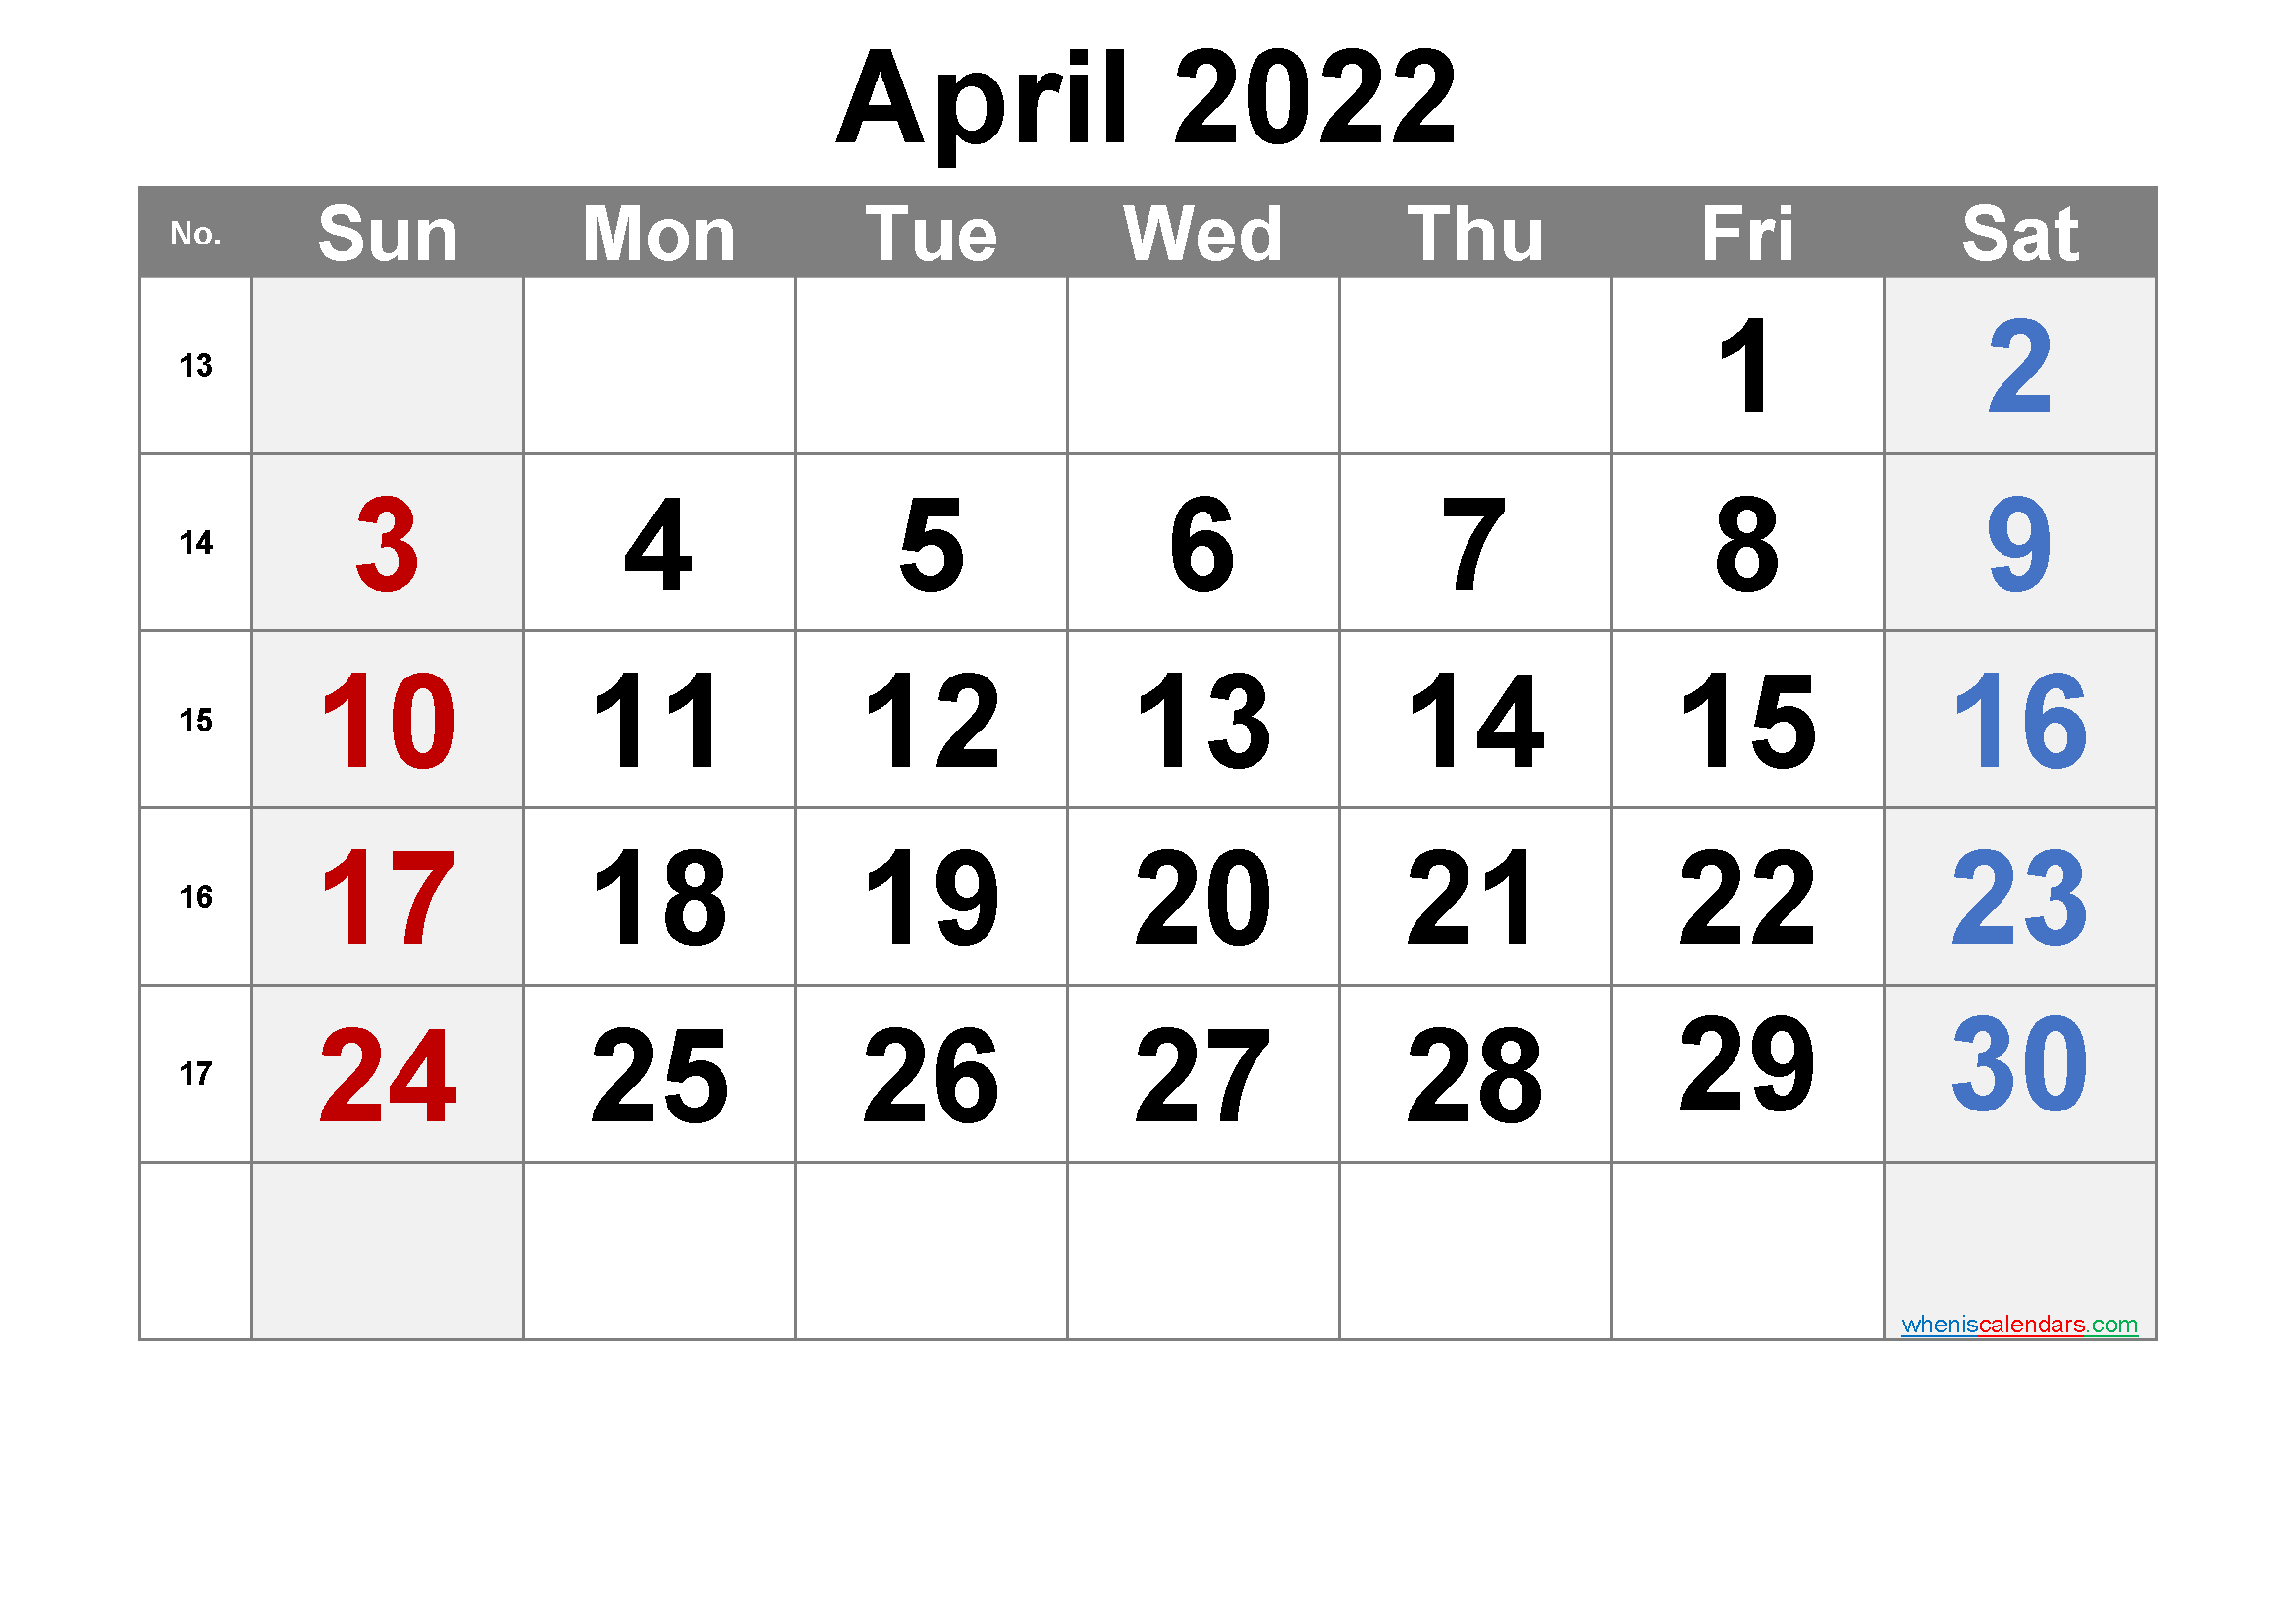 Free April 2022 Calendar With Week Numbers - Free within Printable April 2022 Calendar Template Free Image